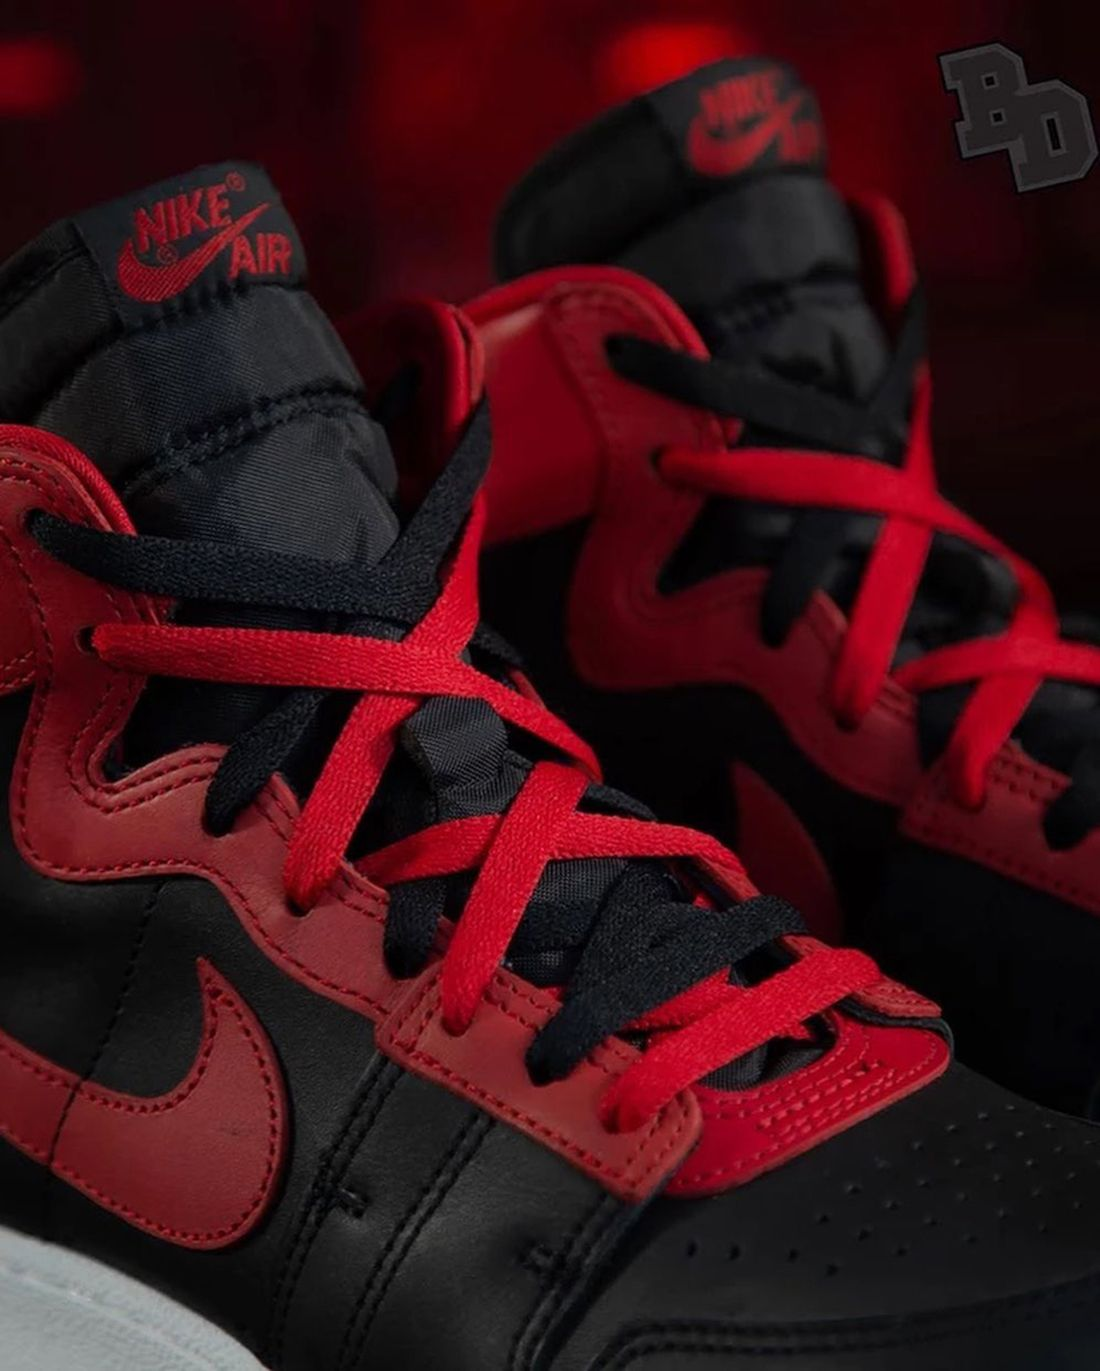 Nike Air Ship OG Banned Togue